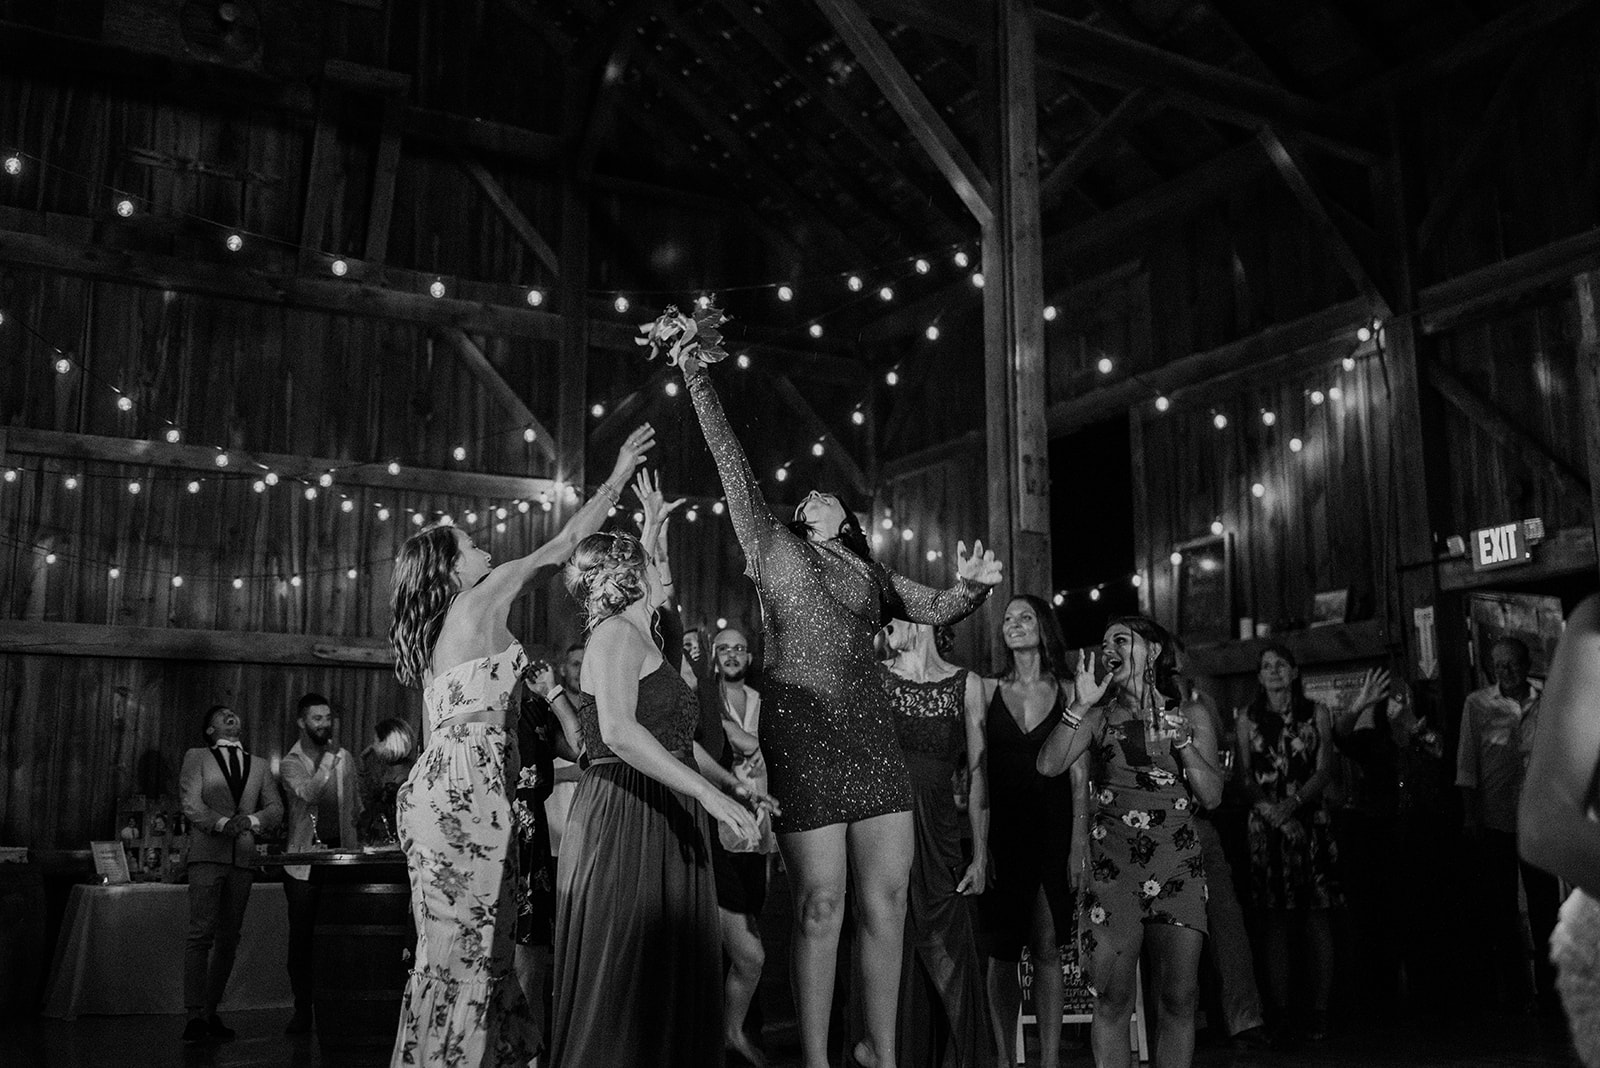 overthevineswisconsinwedding_1483.jpg